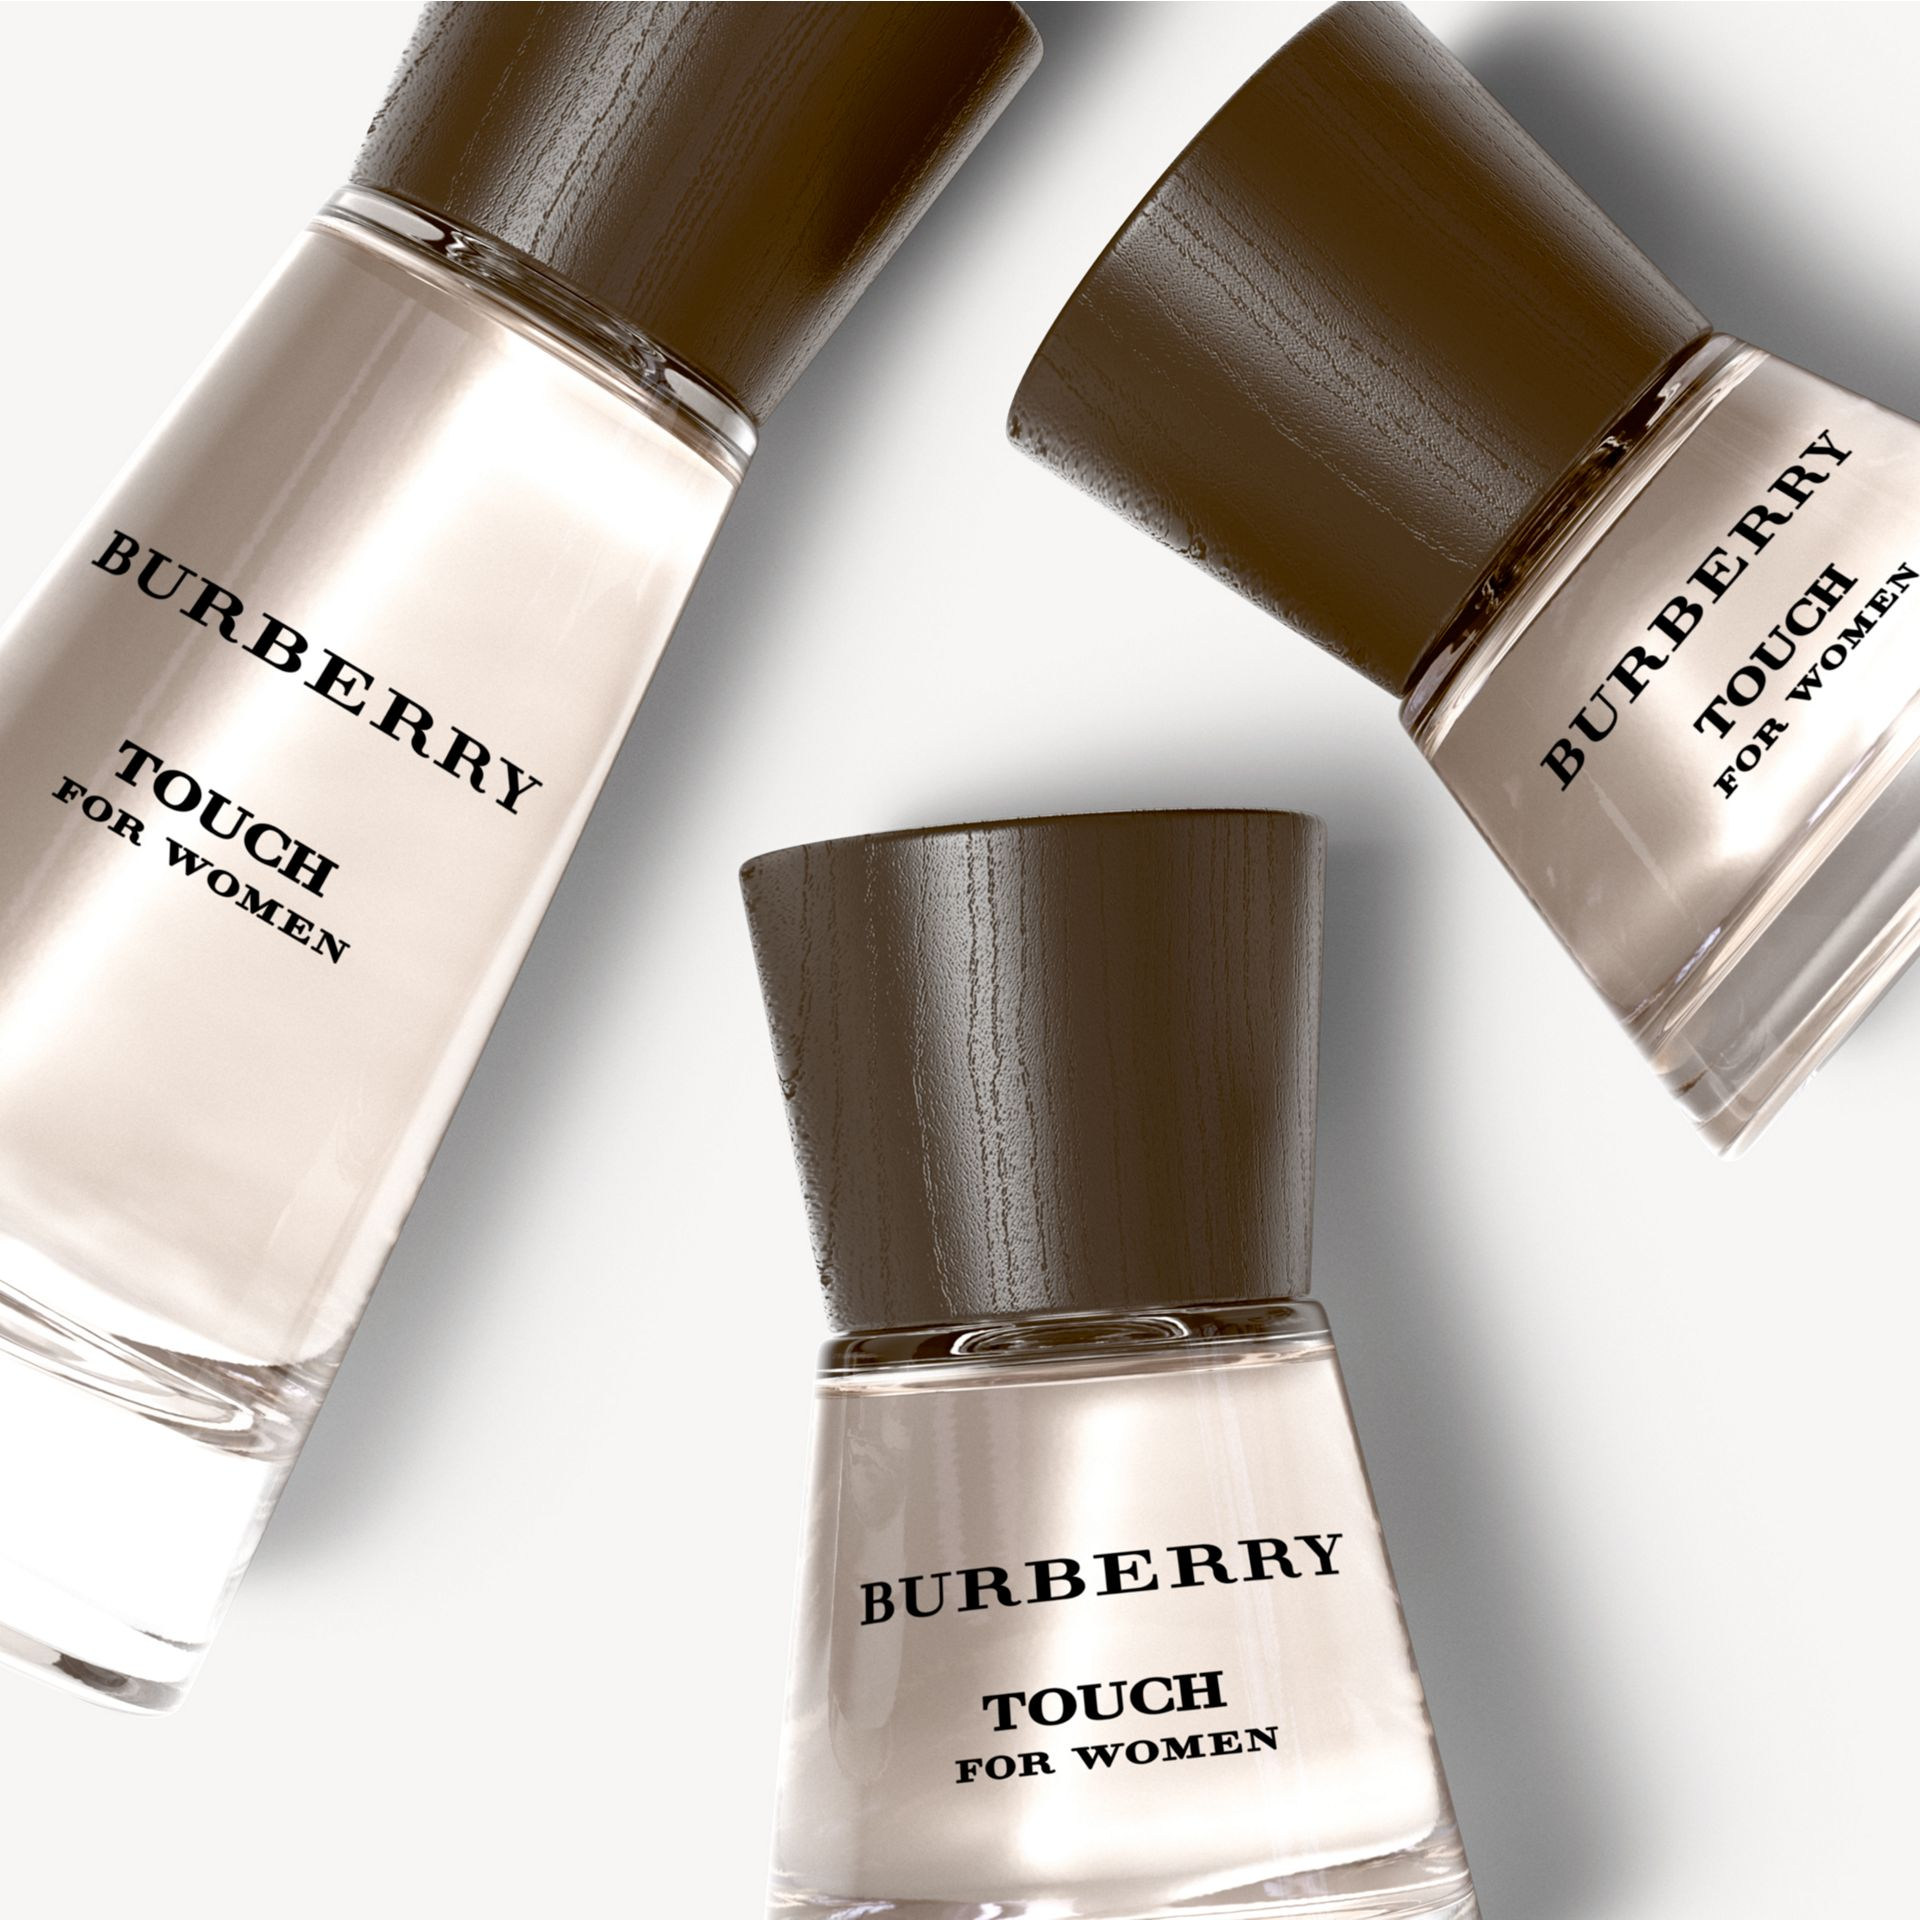 Burberry Touch For Women Eau De Parfum 30ml - Women | Burberry - gallery image 2